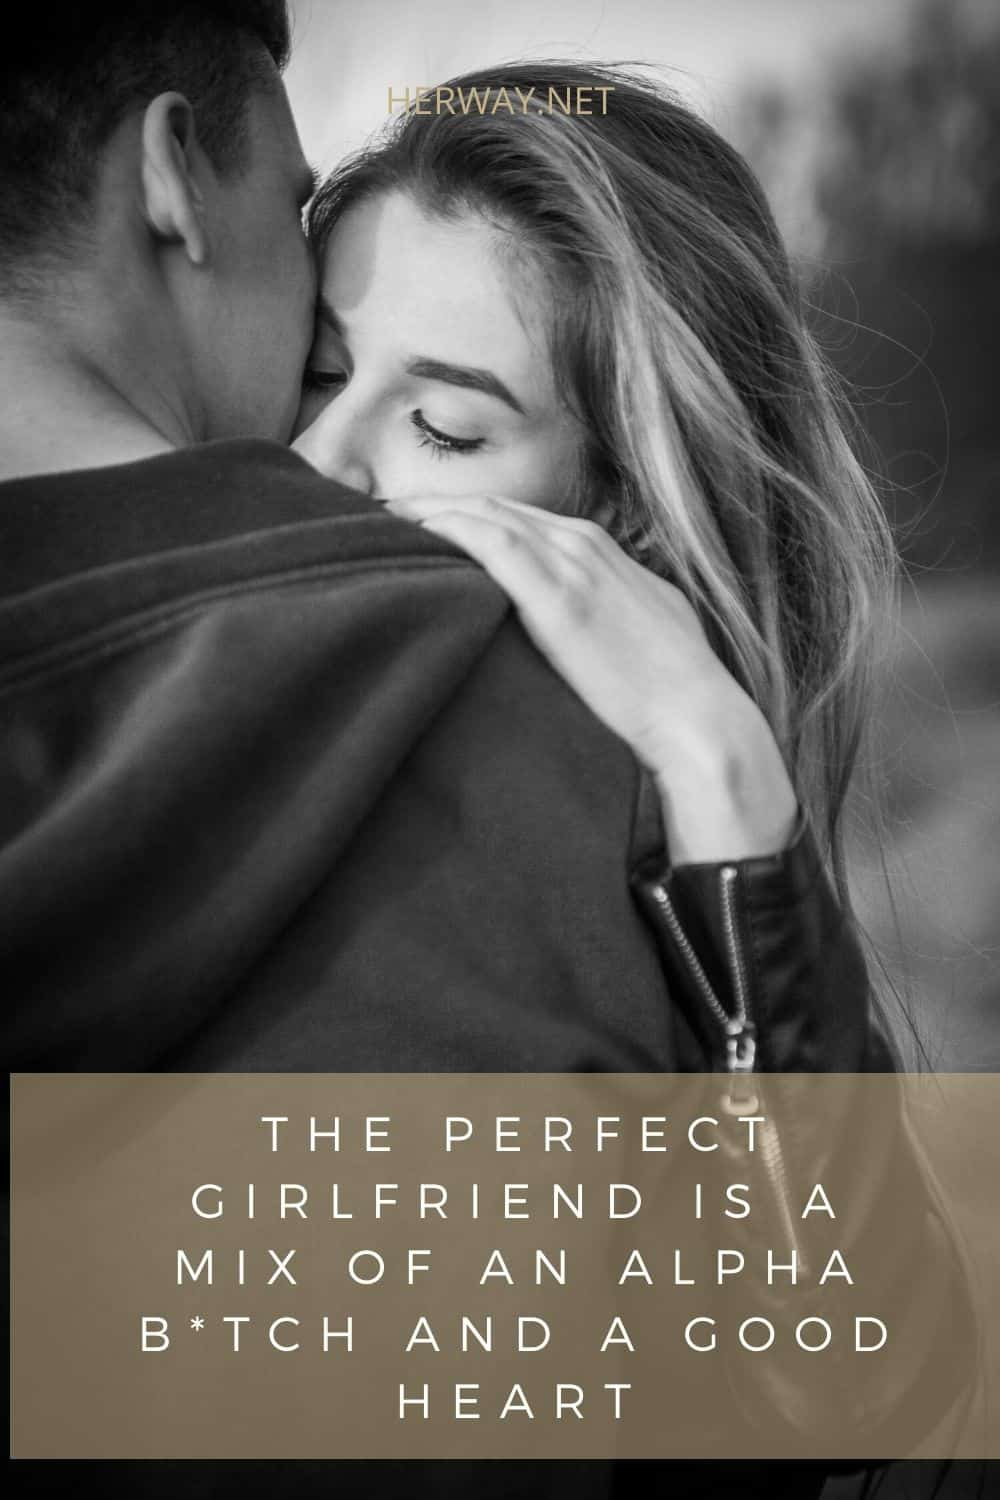 THE PERFECT GIRLFRIEND IS A MIX OF AN ALPHA B*TCH AND A GOOD HEART